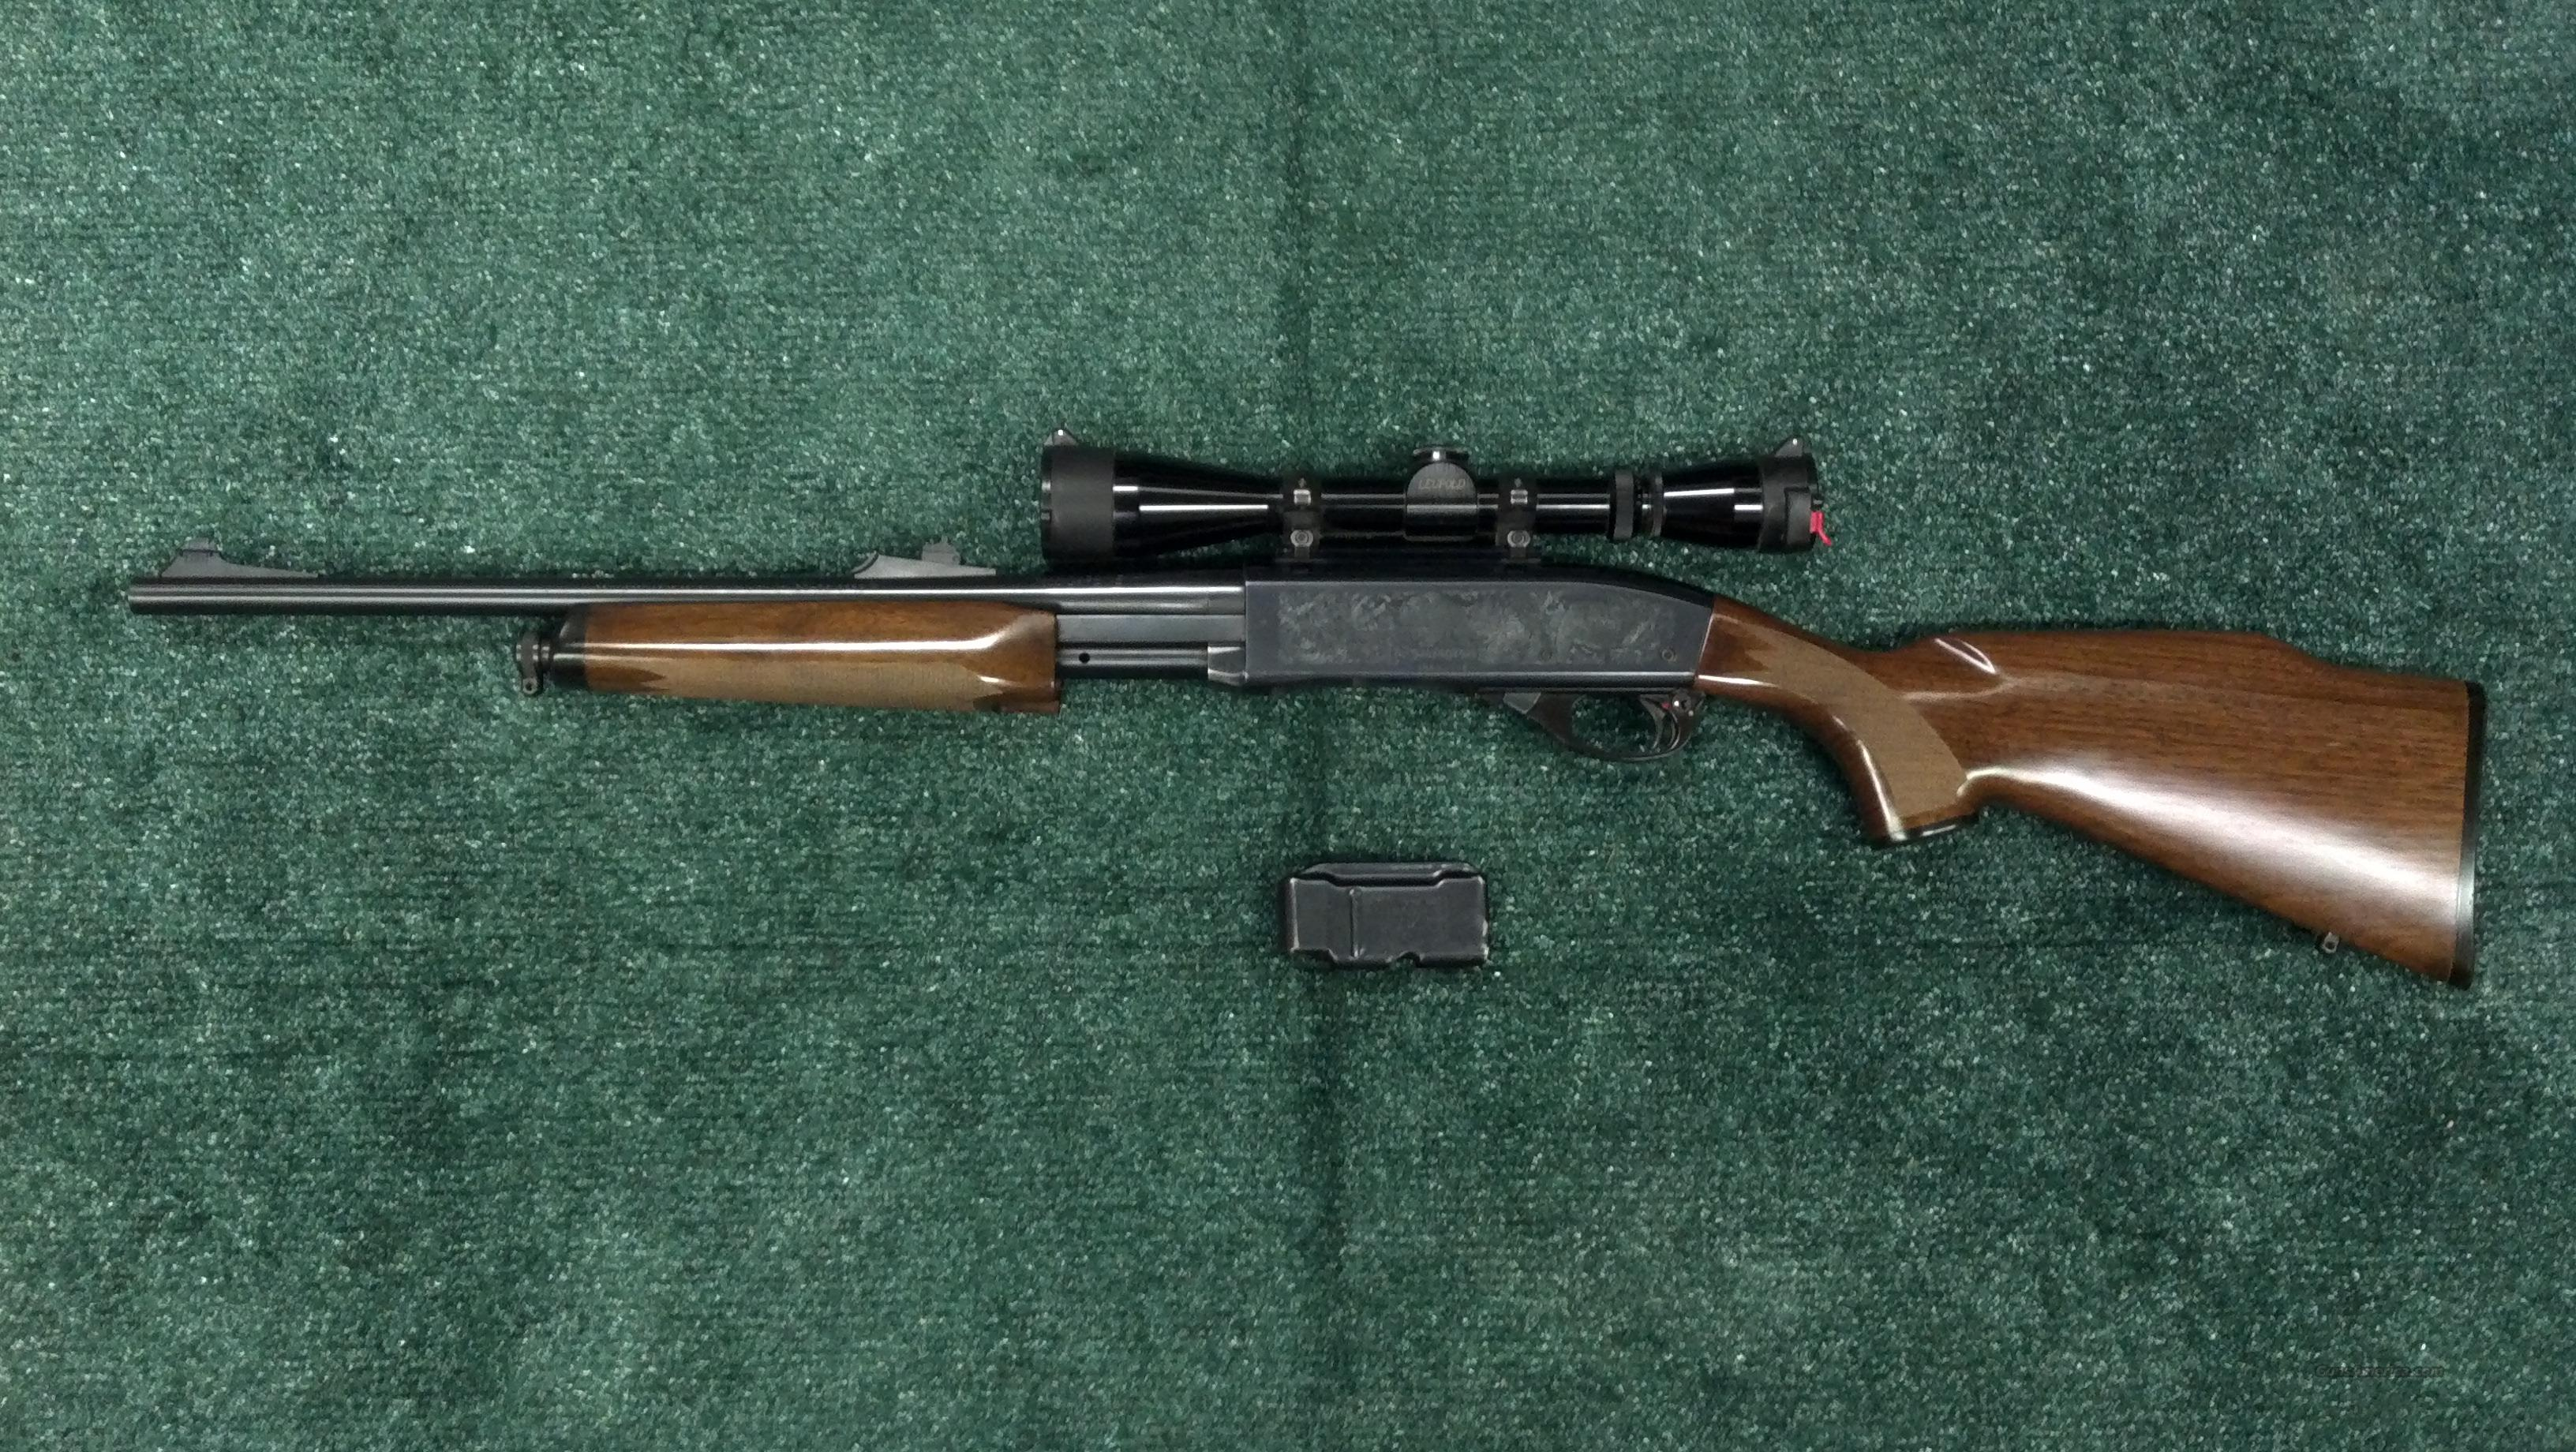 Remington 7600 .30-06 Pump Action Rifle for sale